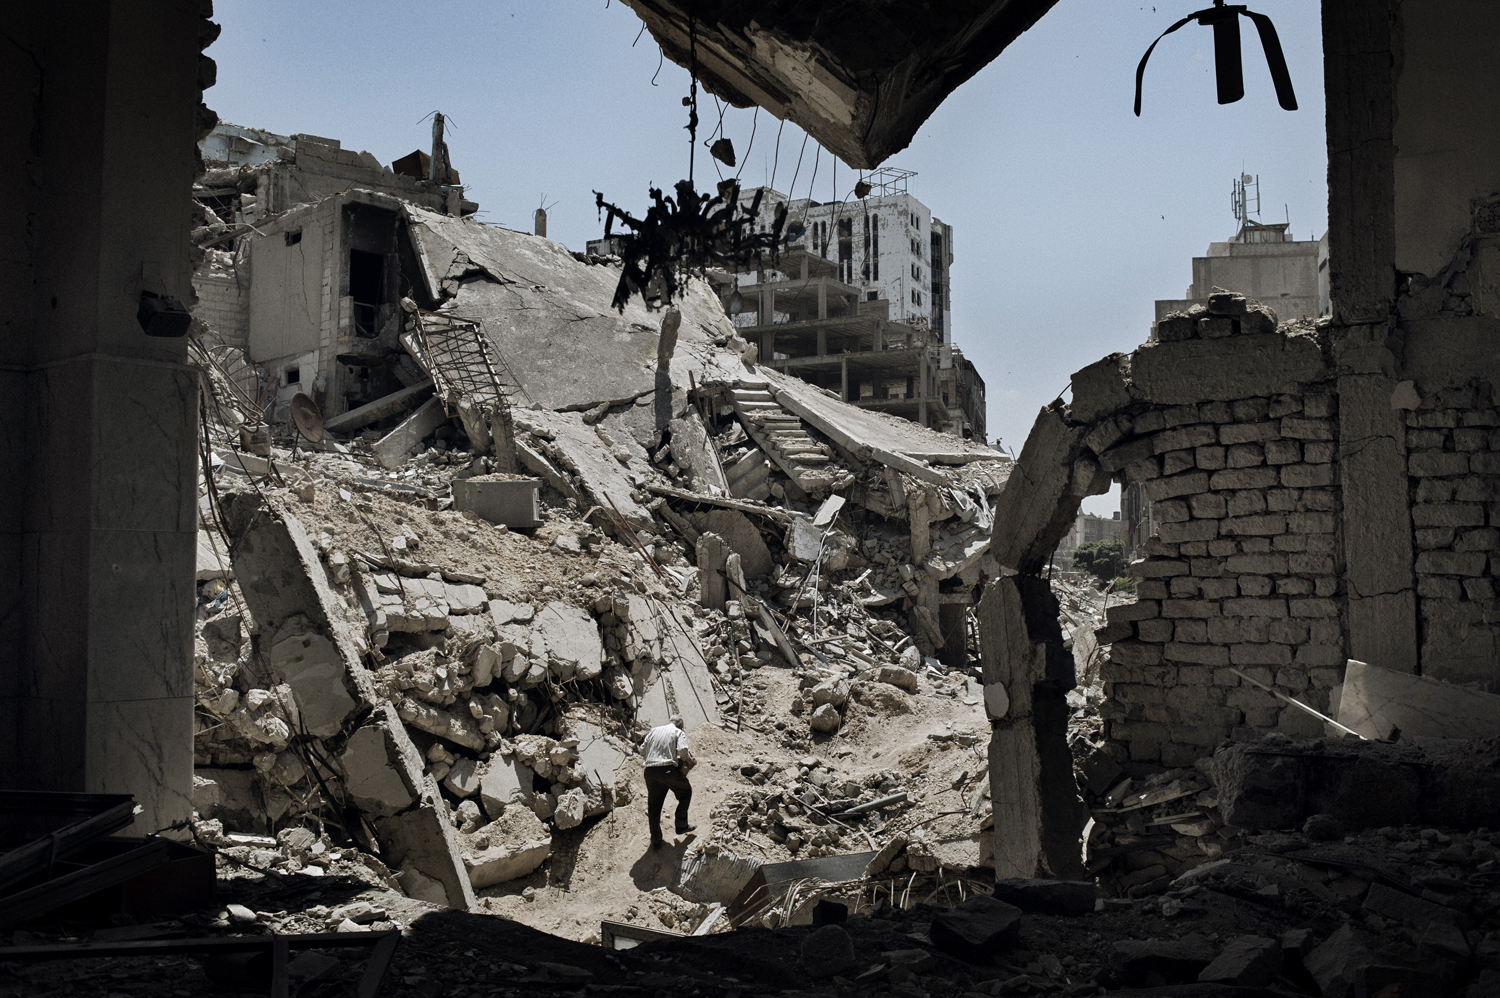 Relentless fighting, along with shells and barrel bombs, have ravaged Khaldiyeh, a middle-class neighborhood in the Old City area of Homs. May 13, 2014.